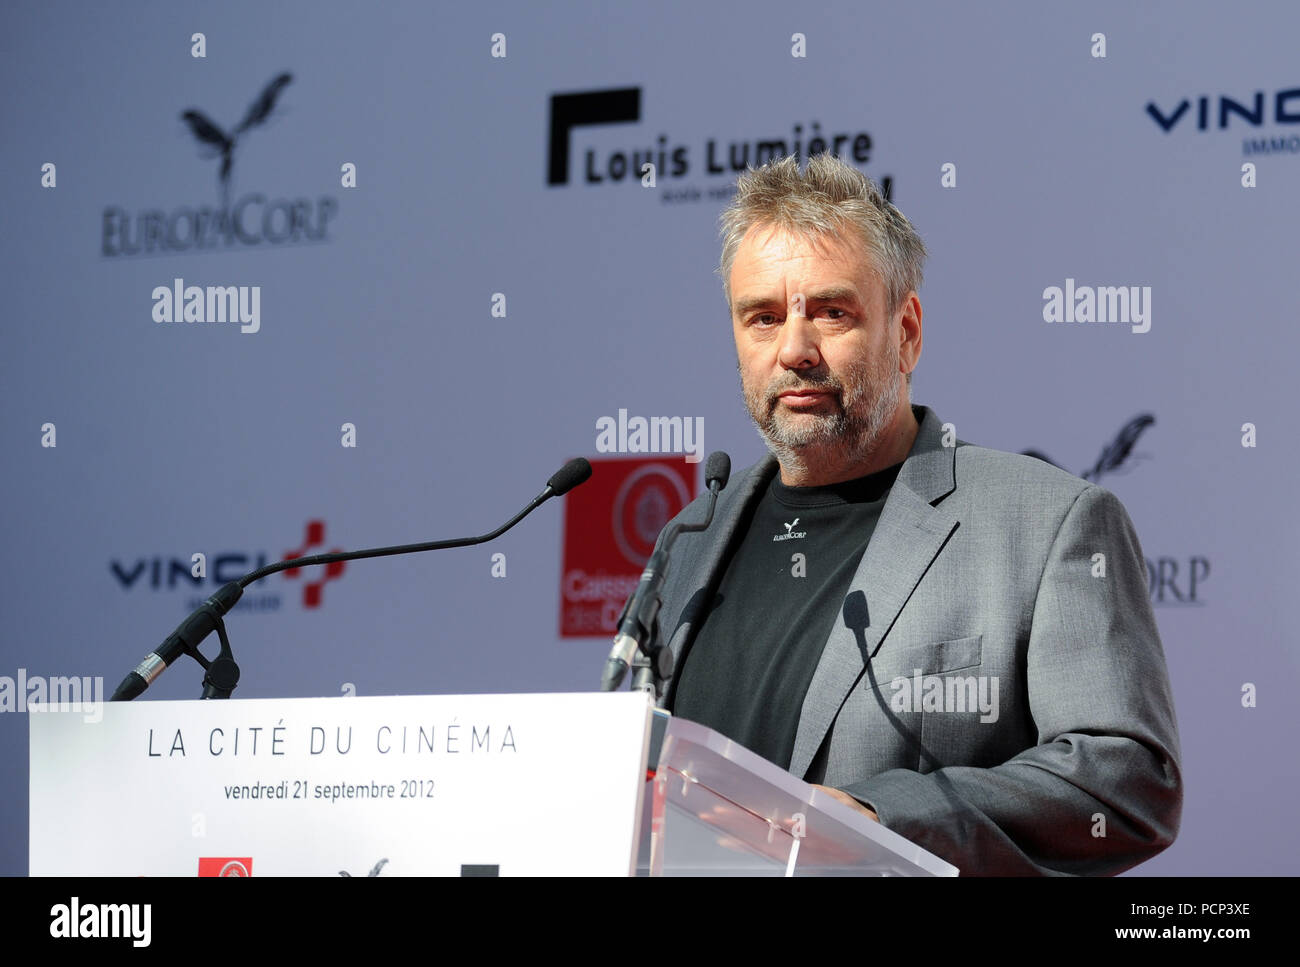 September 21, 2012 - Saint-Denis, France: French filmmaker Luc Besson unveils his 'cinema city' (Cite du Cinema) on the edge of Paris. The 170-million-euros project is the largest film studio facility ever built in France, which earned it the nickname 'Hollywood on Seine'. The former art deco power station compound houses nine state-of-the-art film sets, 20,000sq metres of office, and several carpentry, model-making, and costume workshops. Le producteur Luc Besson inaugure la Cite du Cinema à Saint-Denis. *** FRANCE OUT / NO SALES TO FRENCH MEDIA *** - Stock Image